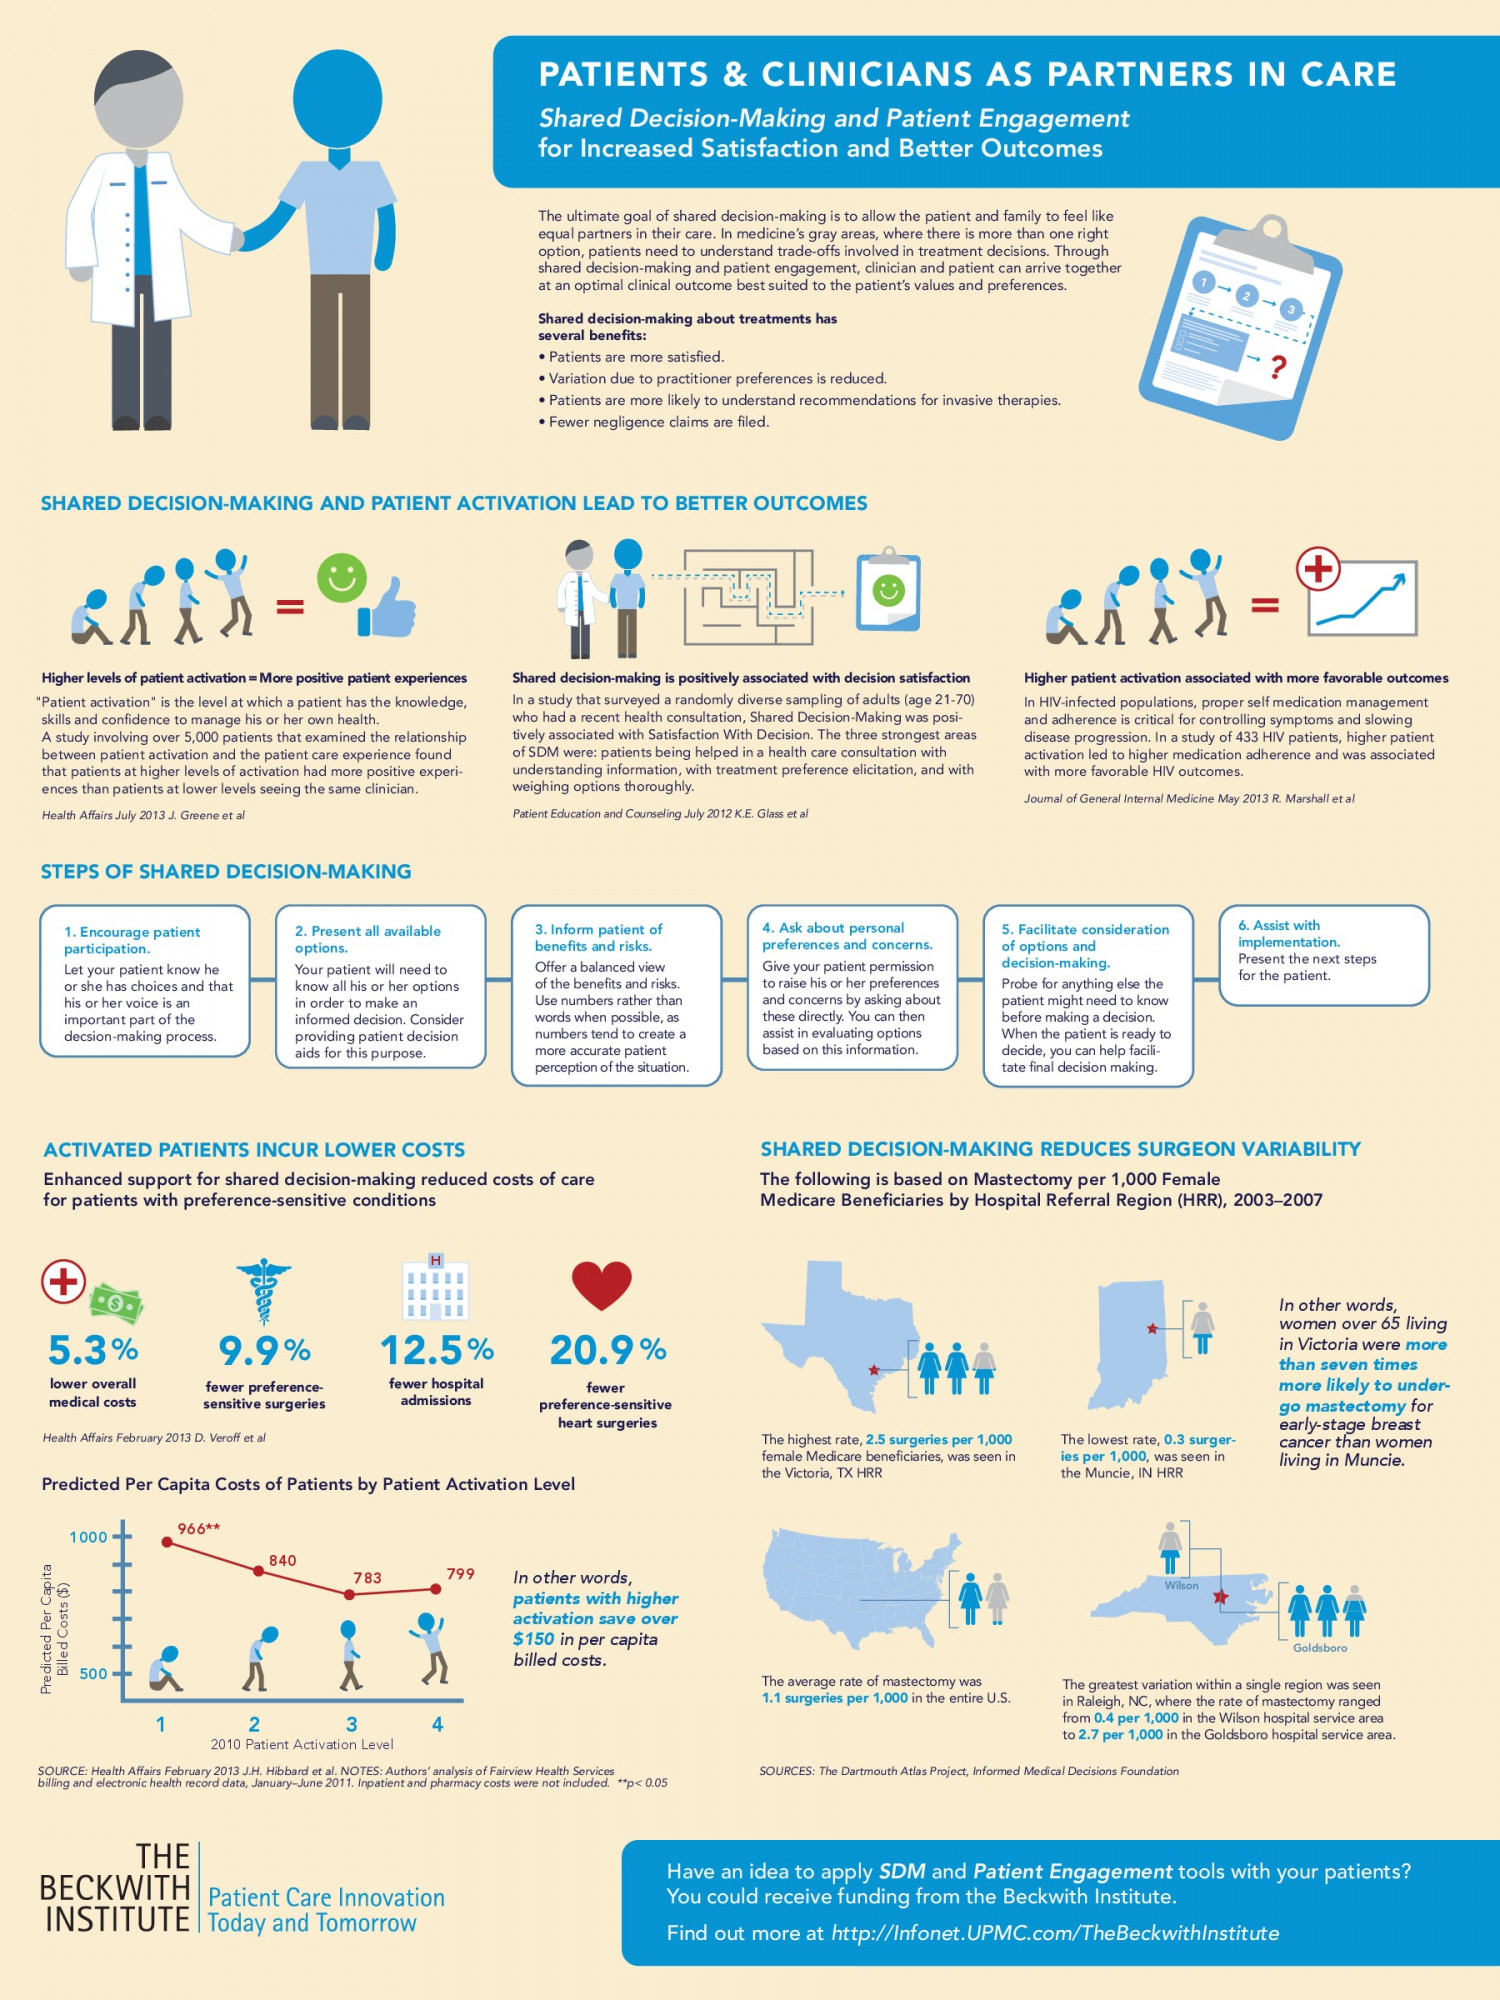 Patients & Clinicians as Partners in Care Infographic